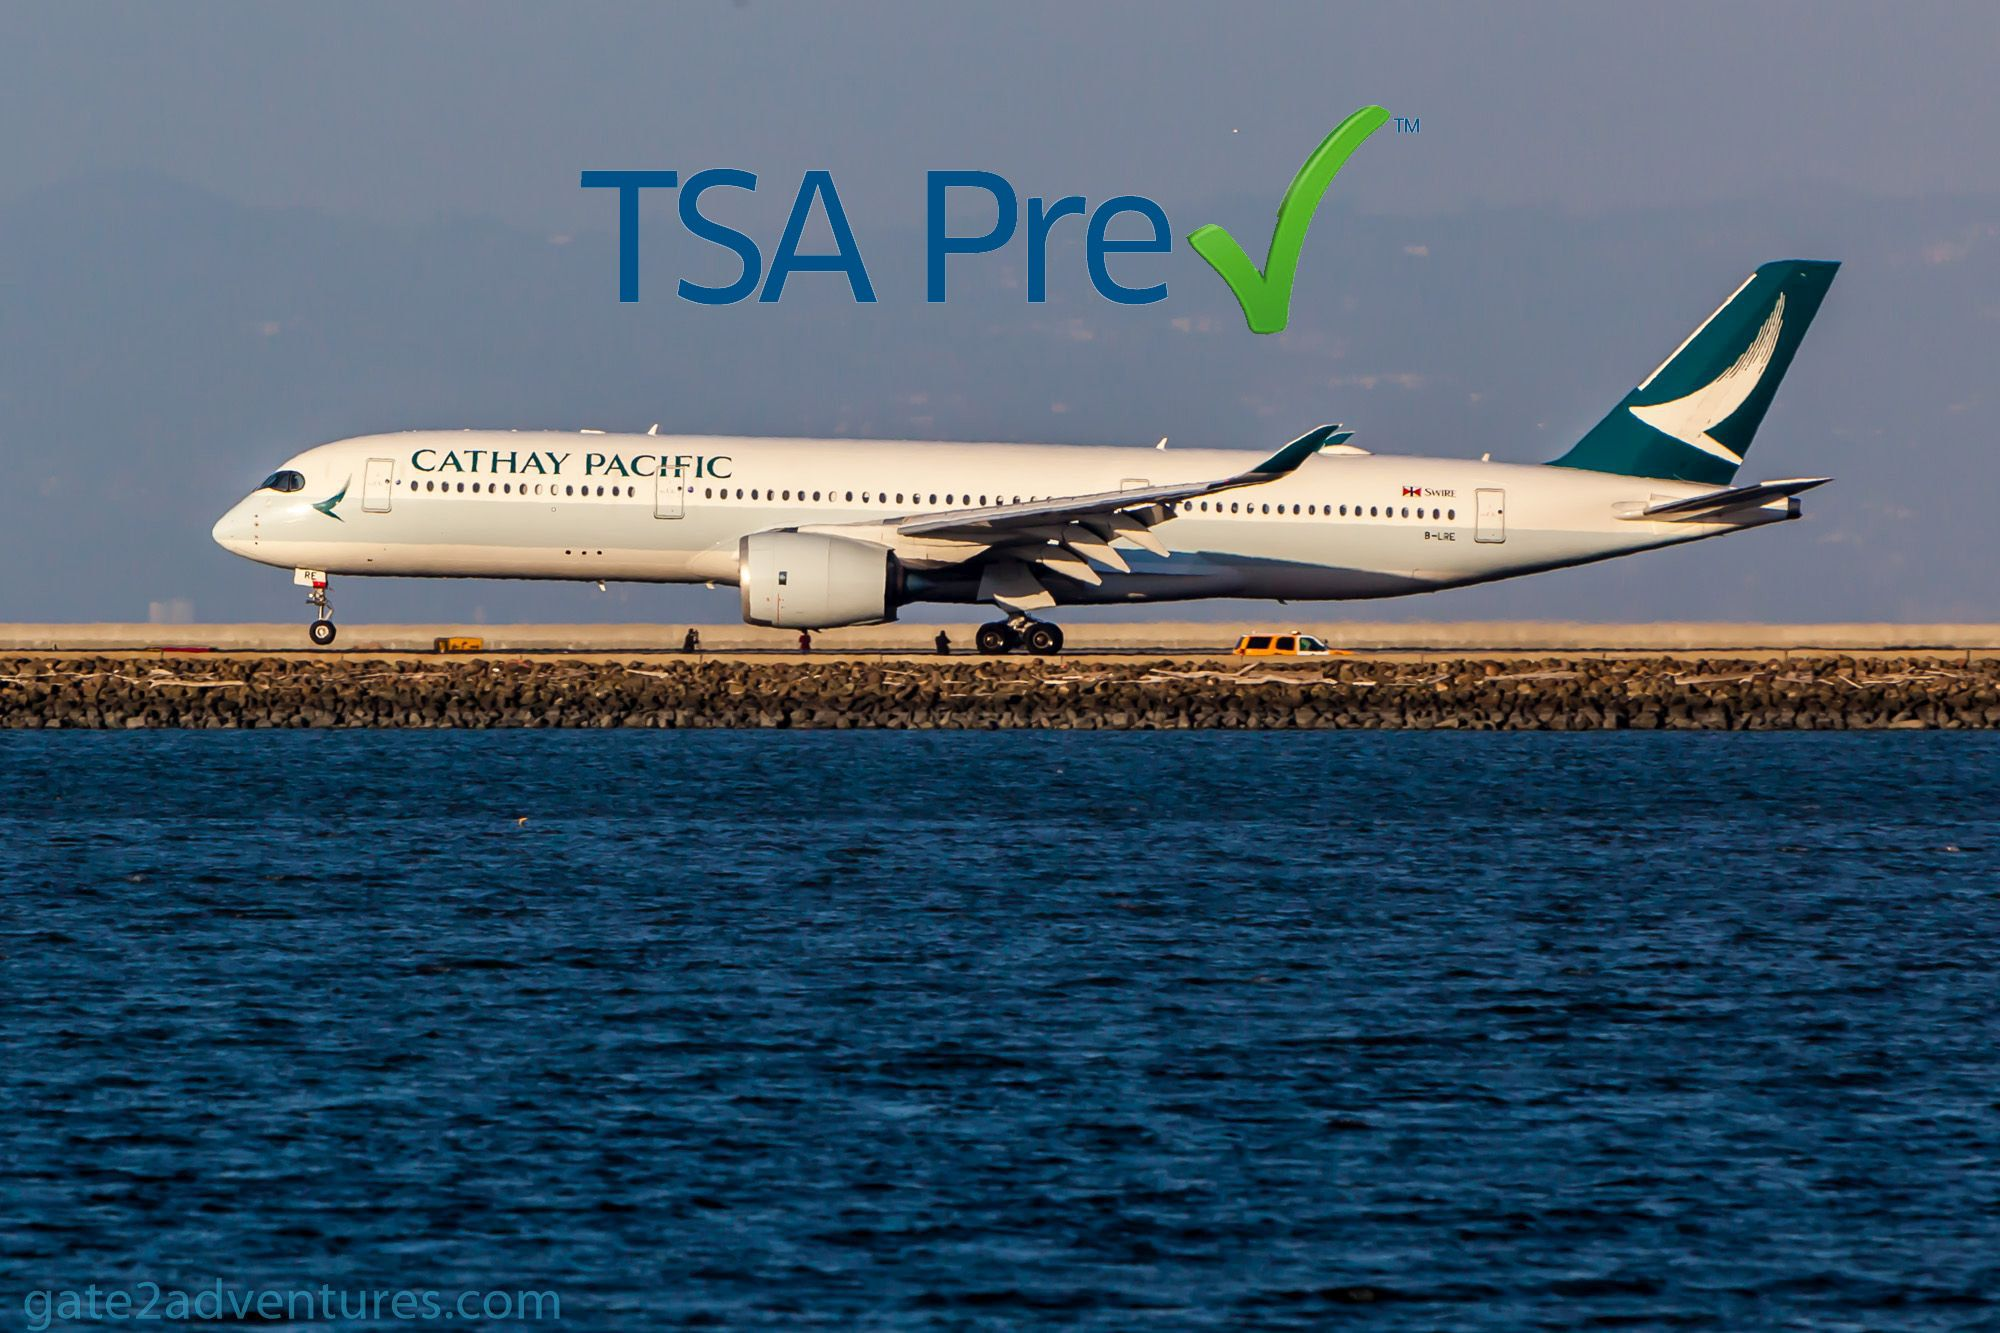 Cathay Pacific Is Now a Participating Airline in TSA Pre✓®